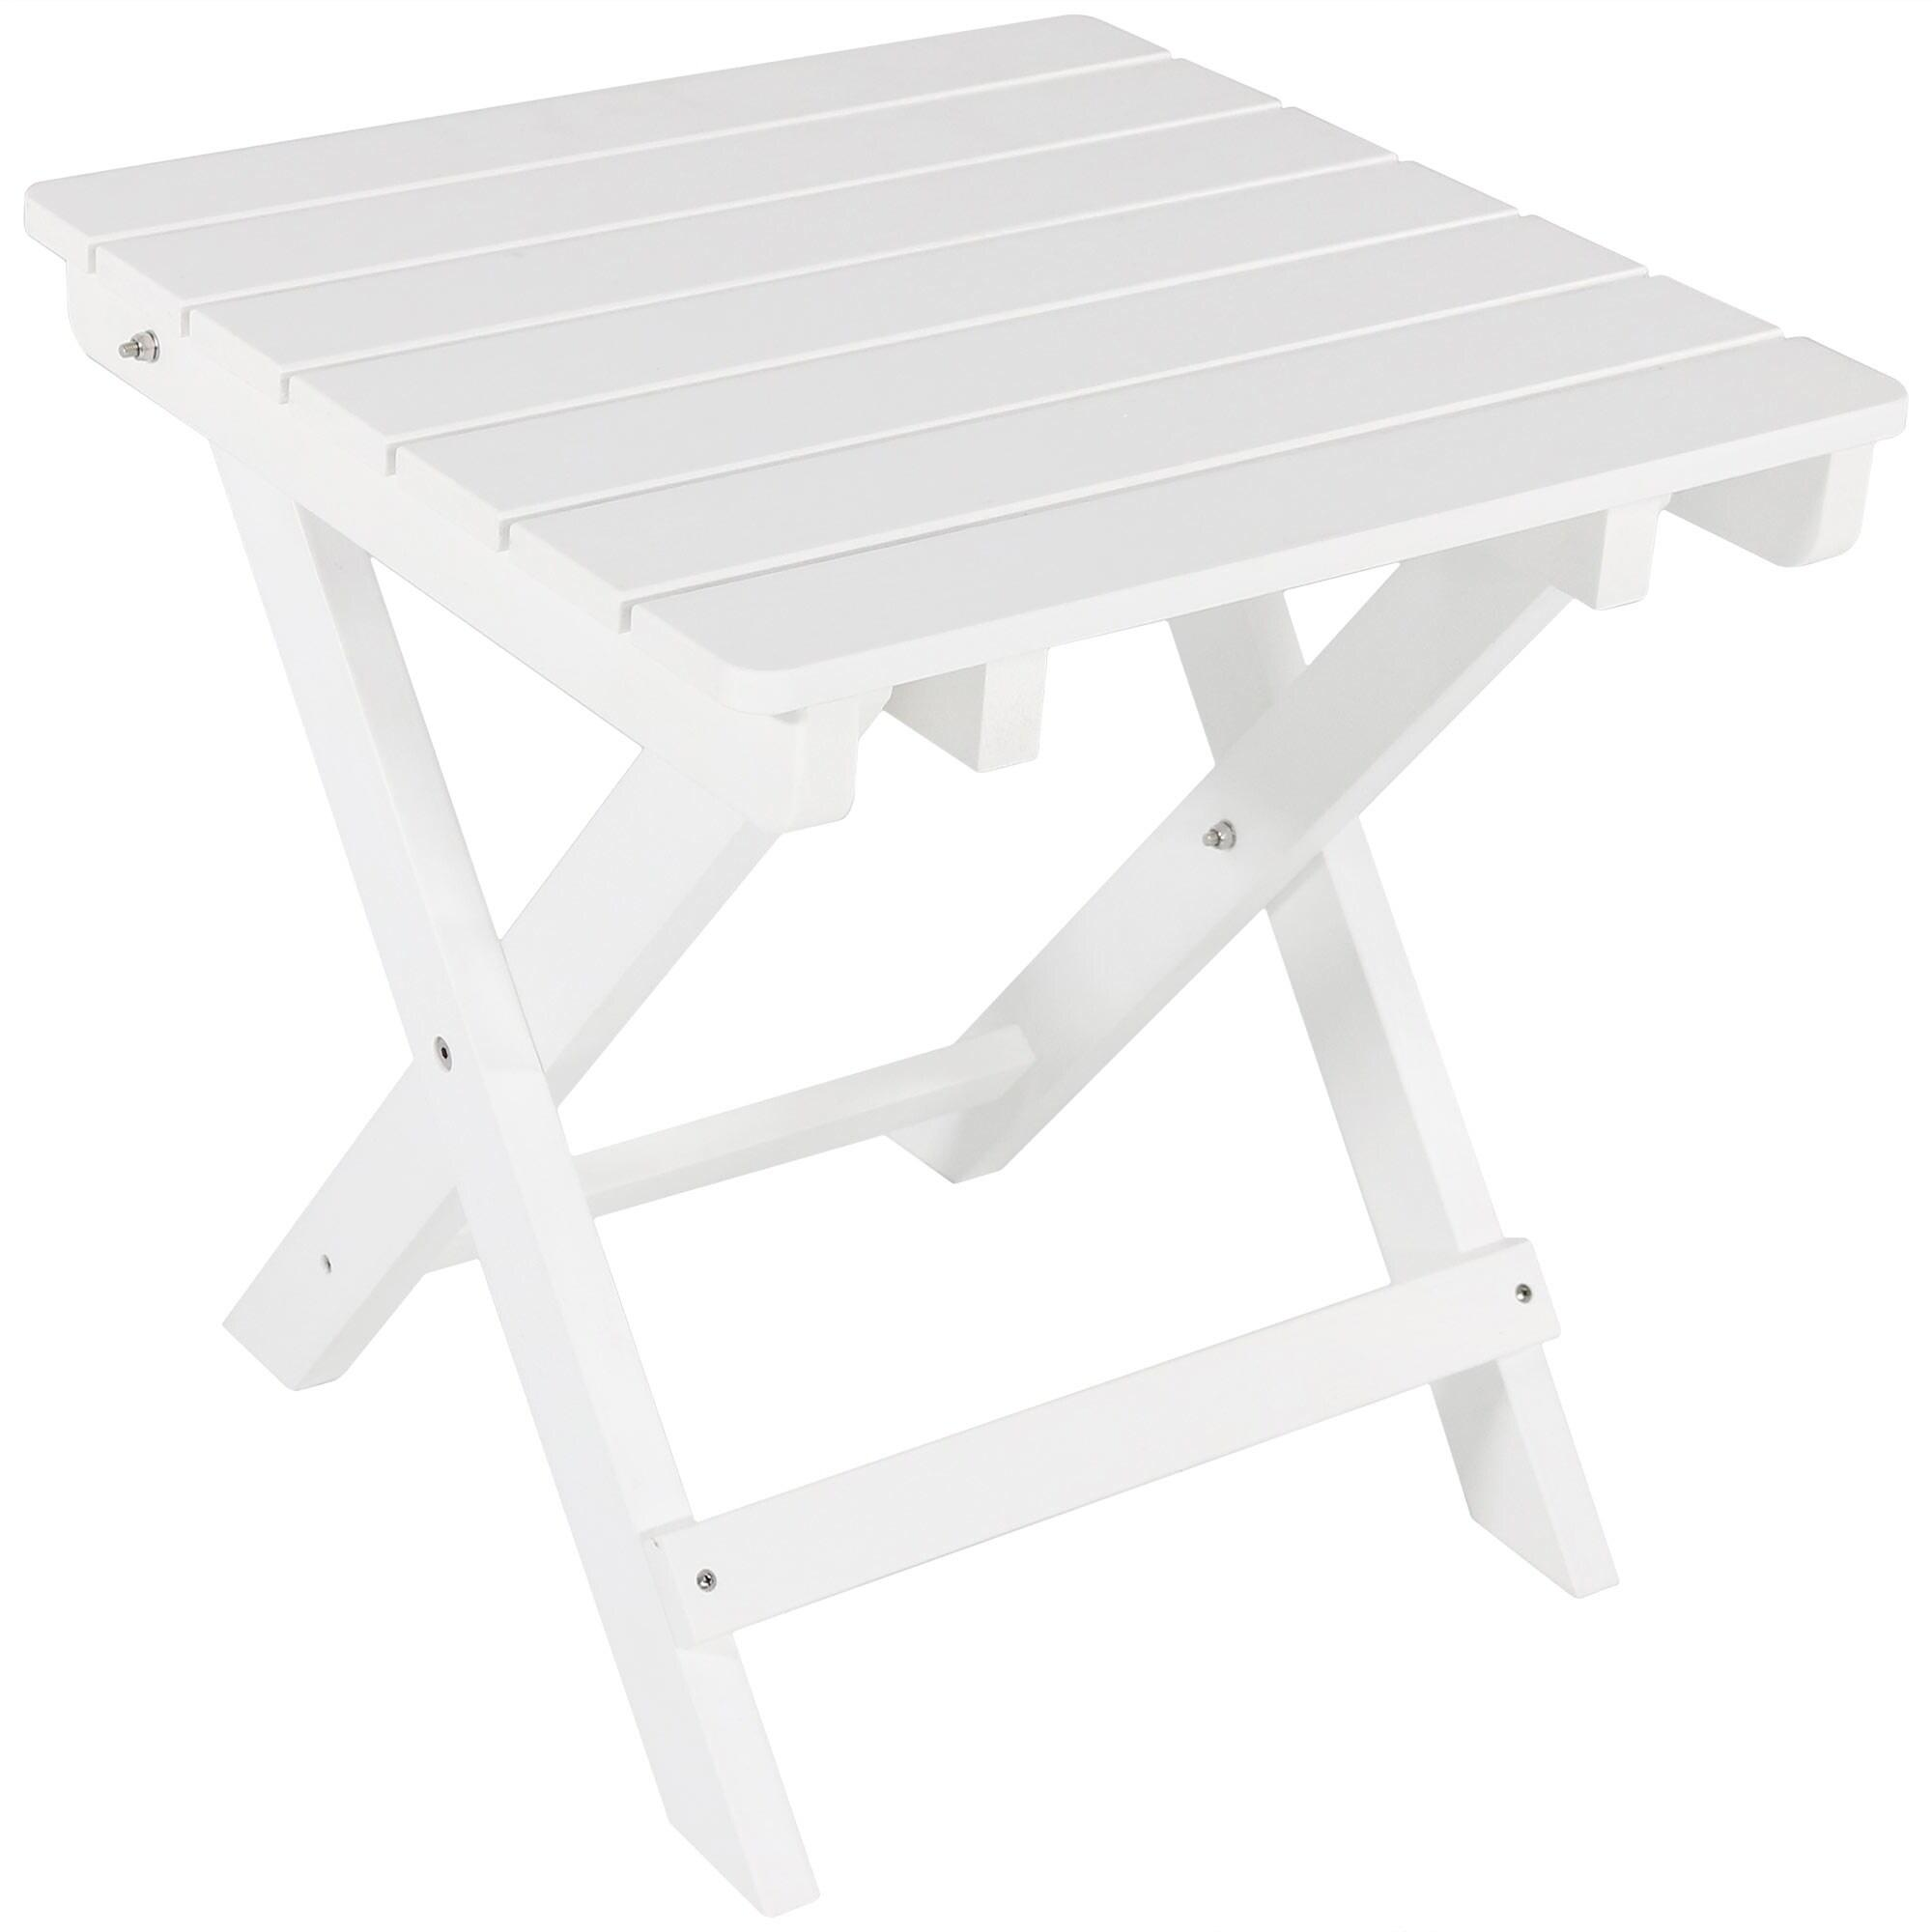 Sunnydaze All-Weather Outdoor Folding Portable Side Table- Wood Design-White